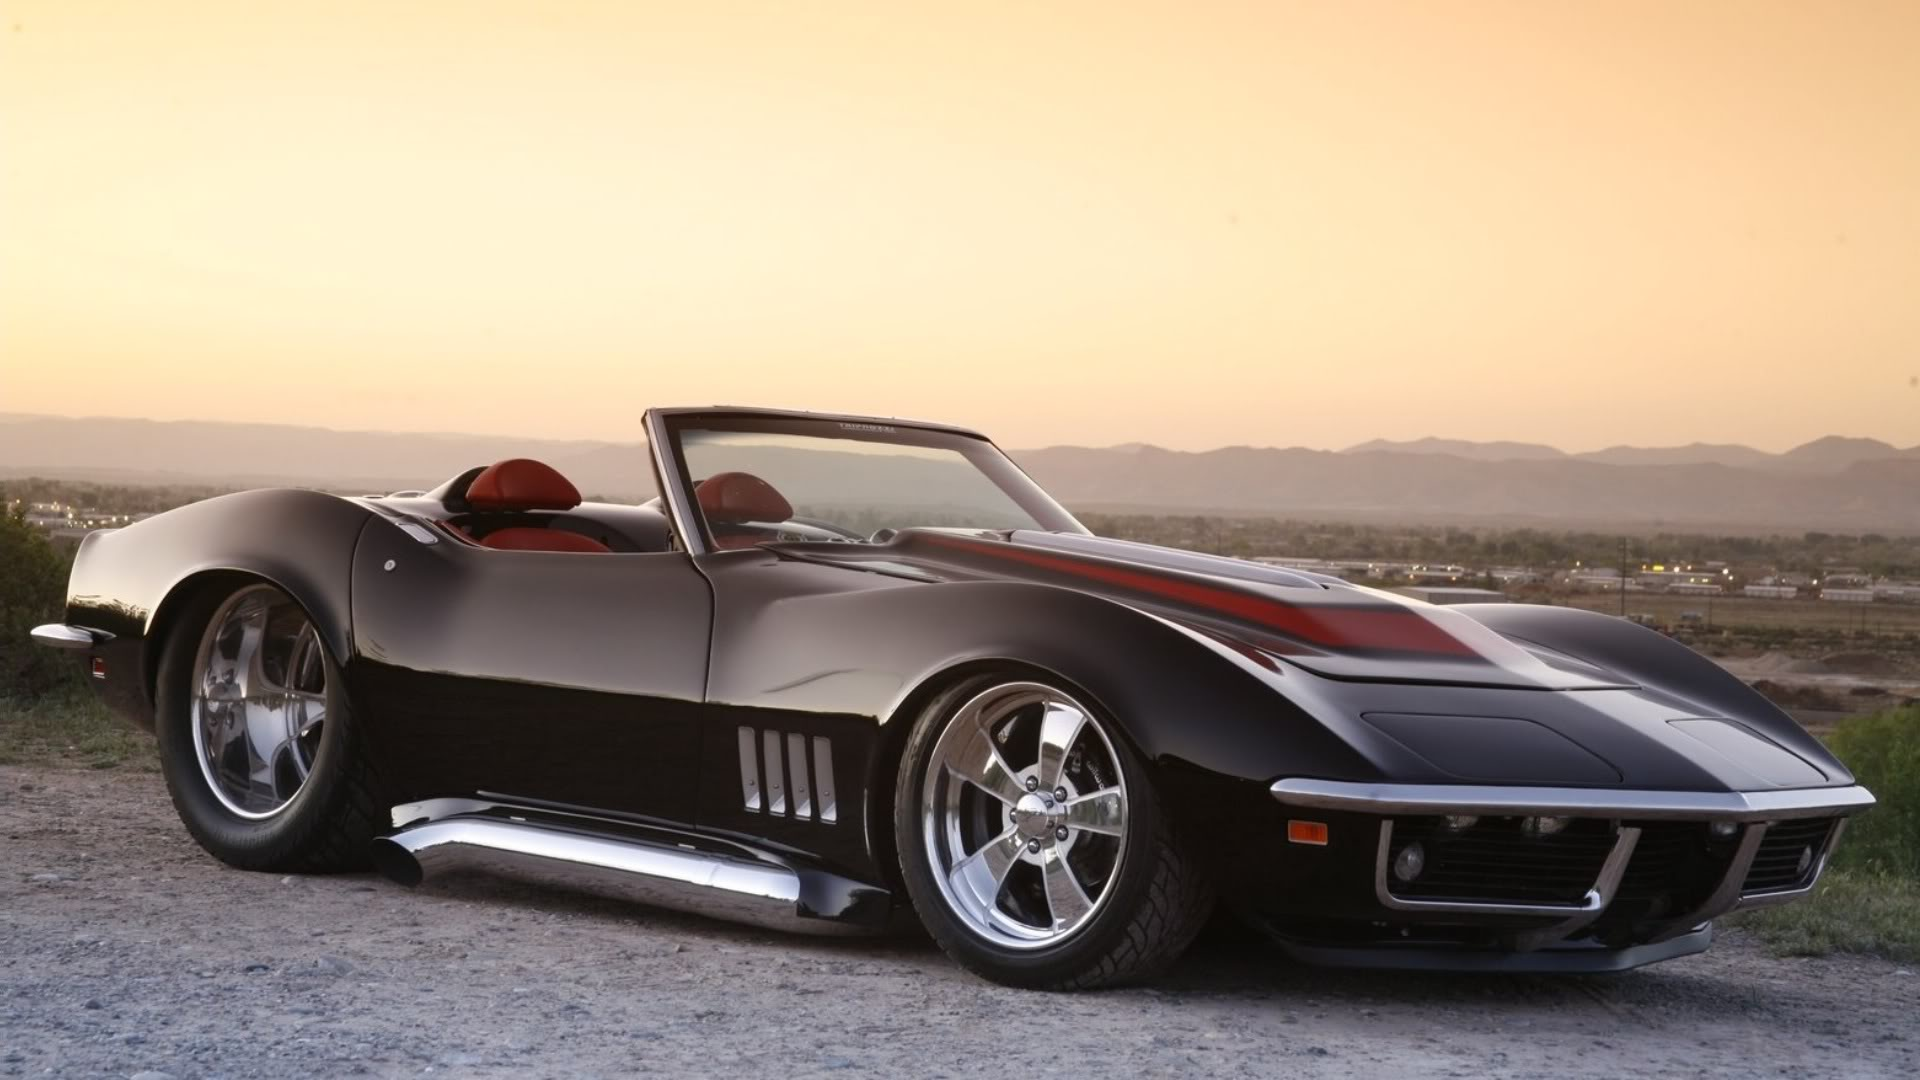 1969 black chevrolet corvette roadster wallpaper 1920x1080 36944. Cars Review. Best American Auto & Cars Review